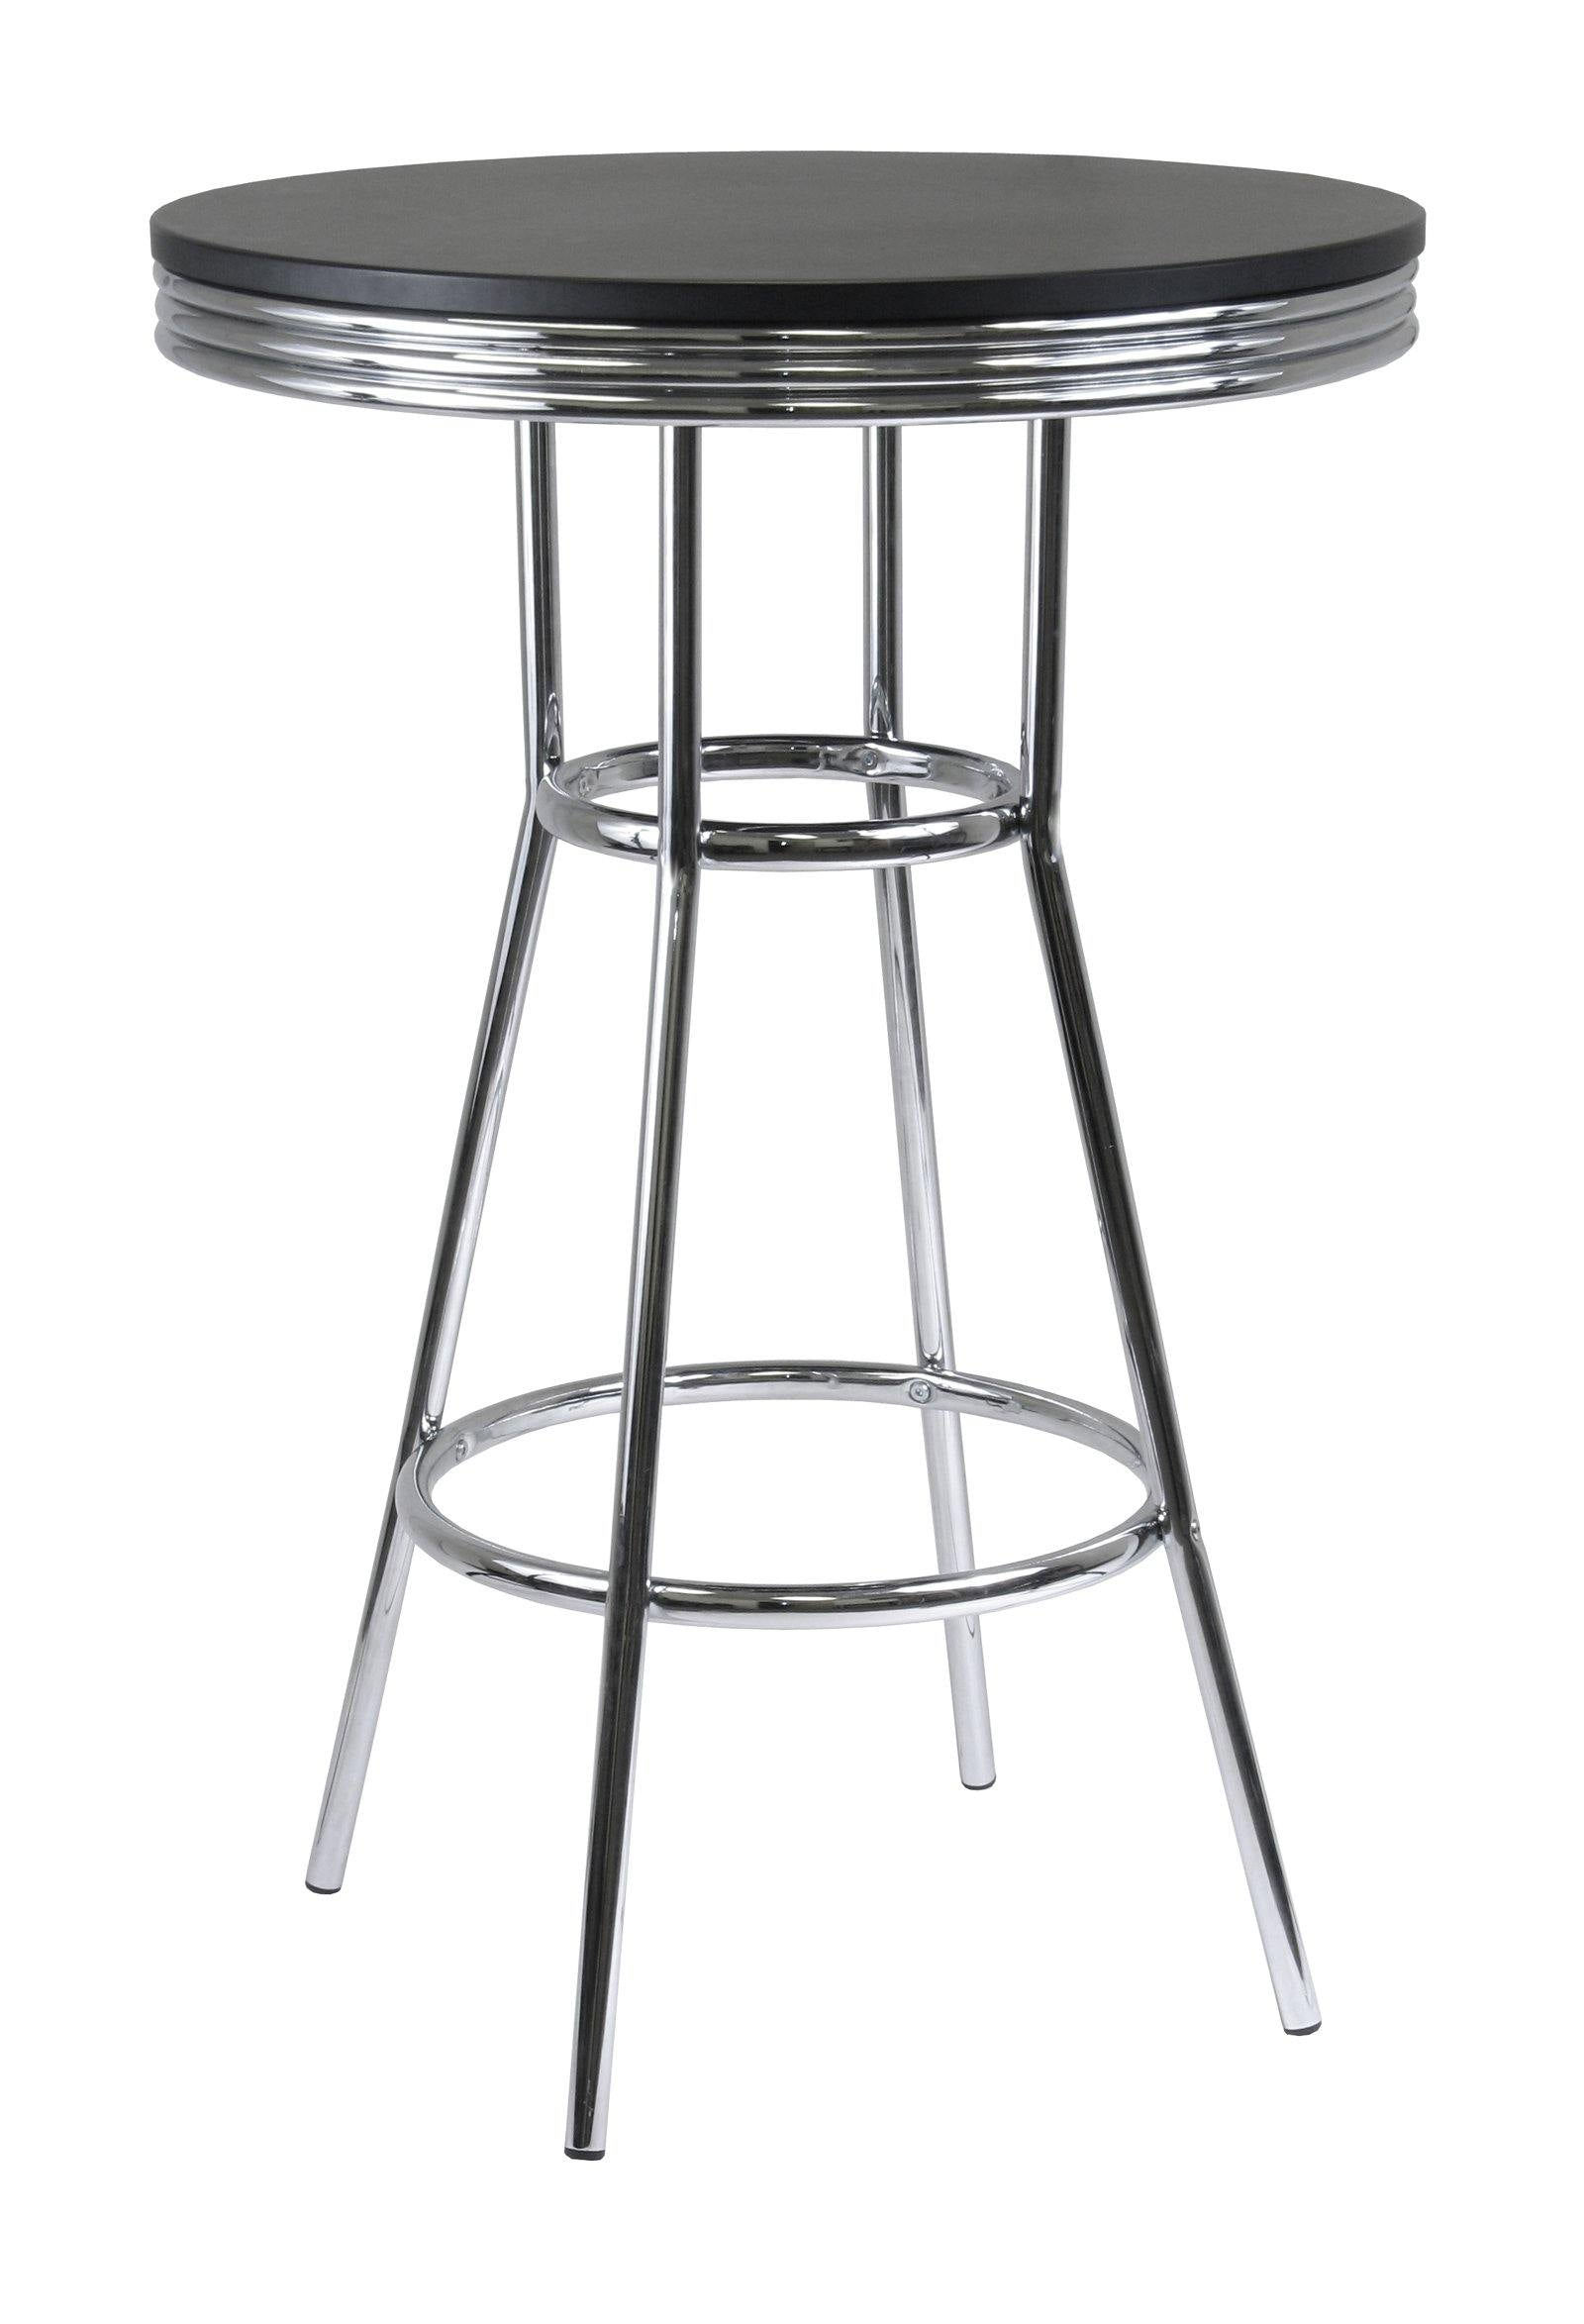 Summit Round Pub Table, Black & Chrome